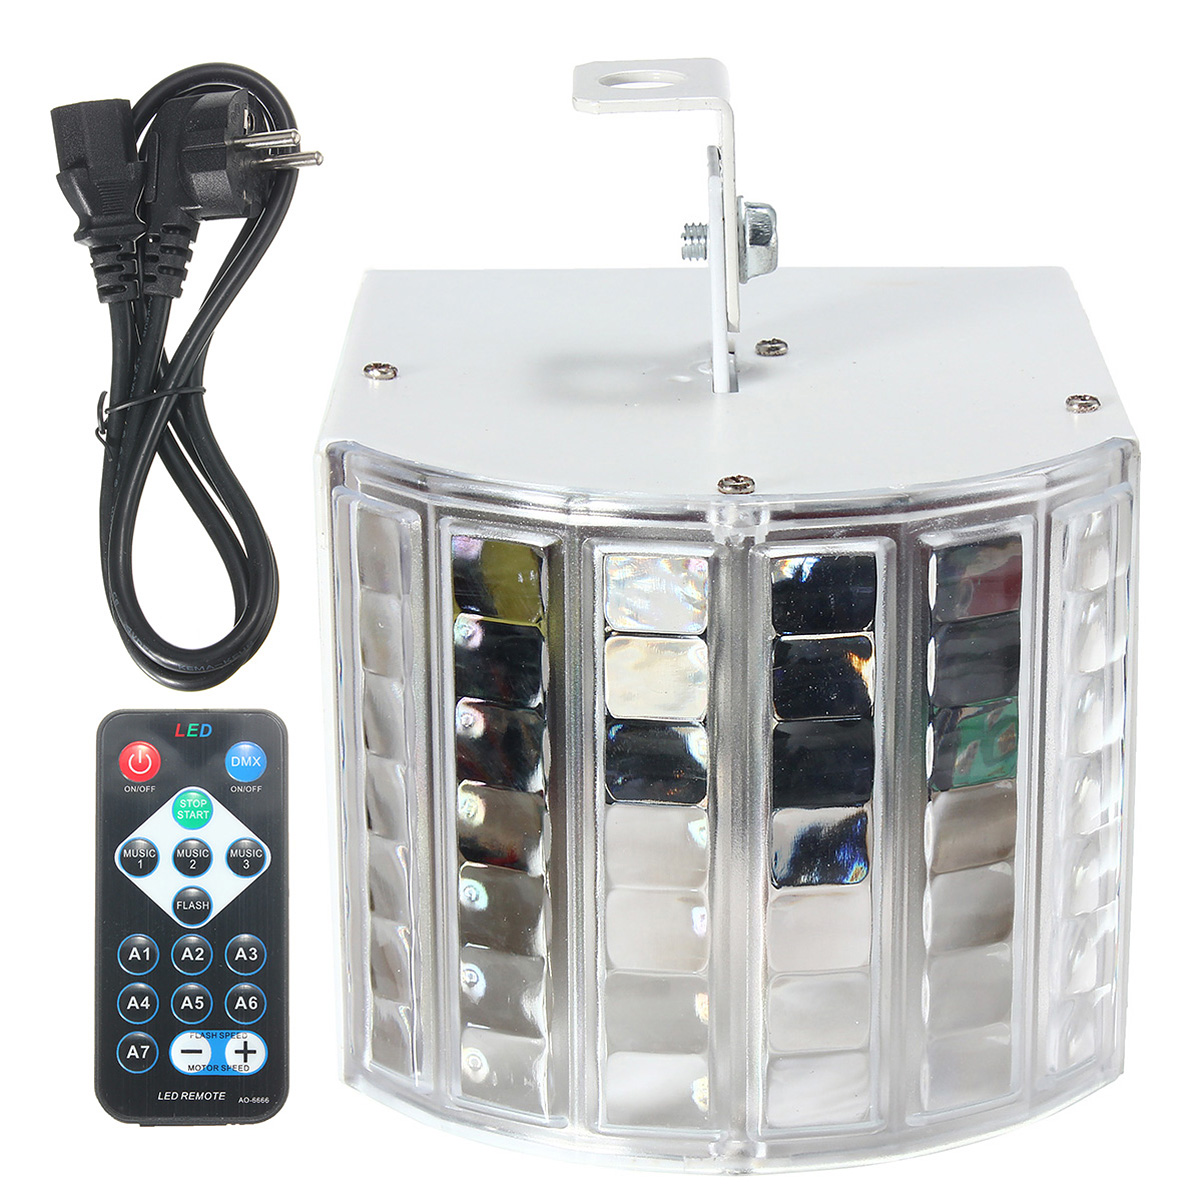 6W LED RGB Auto/Sound Control DMX512 Strobe  Effect Lighting DJ Disco Bar Party 7 Channel With Remote Light Lamp AC90-240V